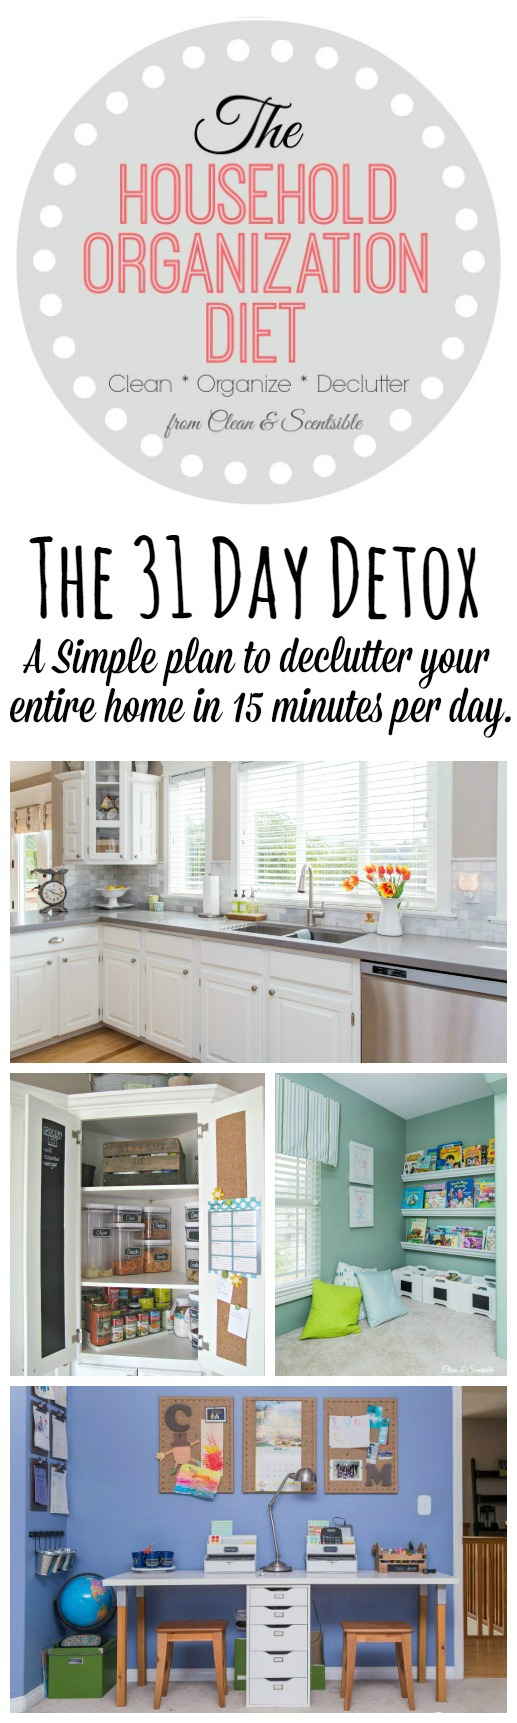 Dcluttered and organized kitchen, pantry, and kids' bedrooms.